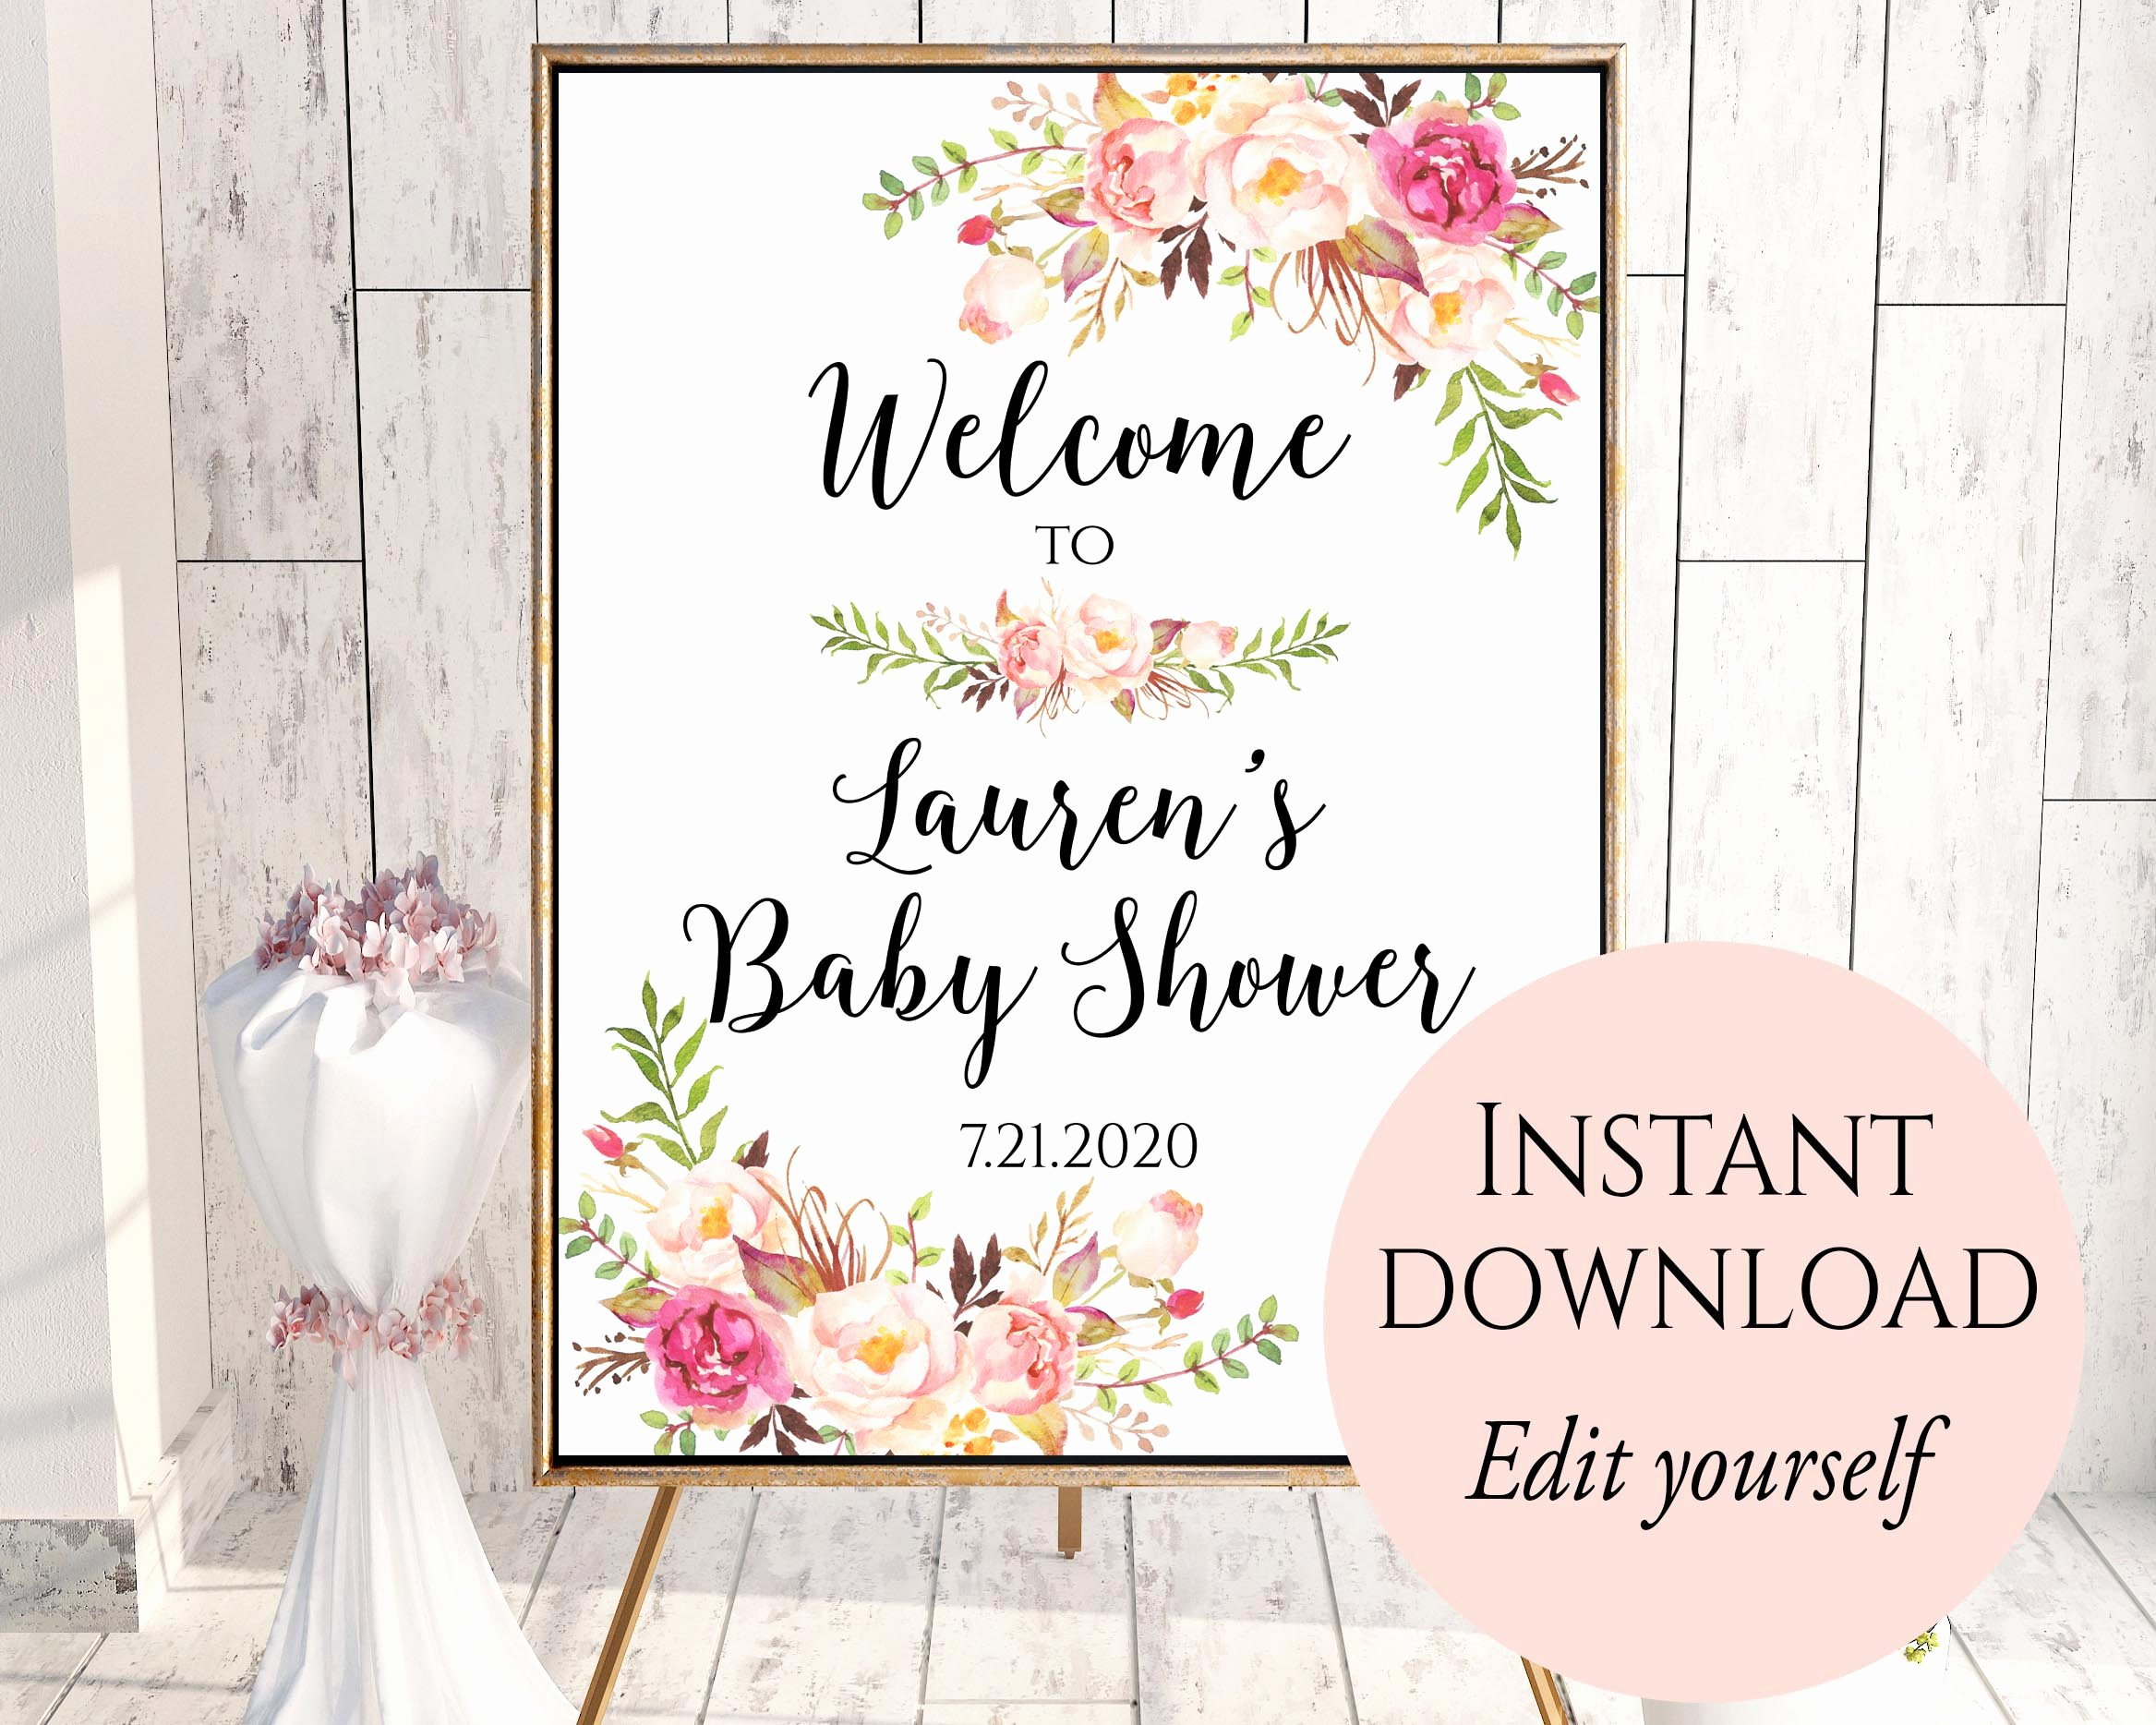 Welcome Sign Template Free Inspirational Wel E to Baby Shower Baby Shower Wel E Sign Template